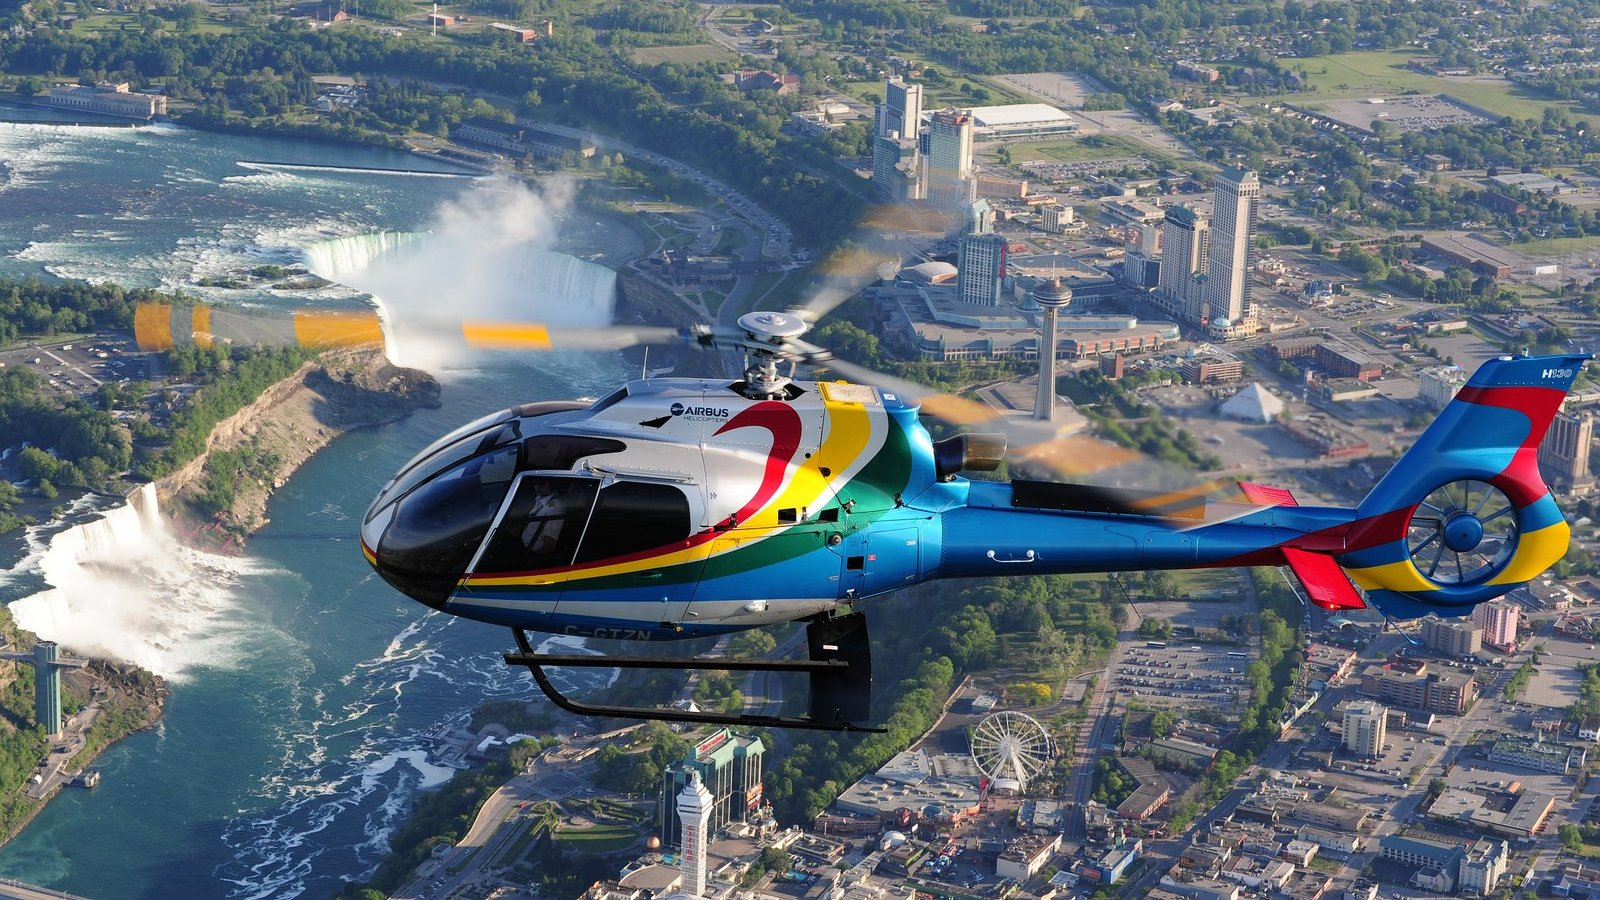 Niagara Helicopters flies 100,000 guests over Niagara Falls every year. Photo: Mike Reyno